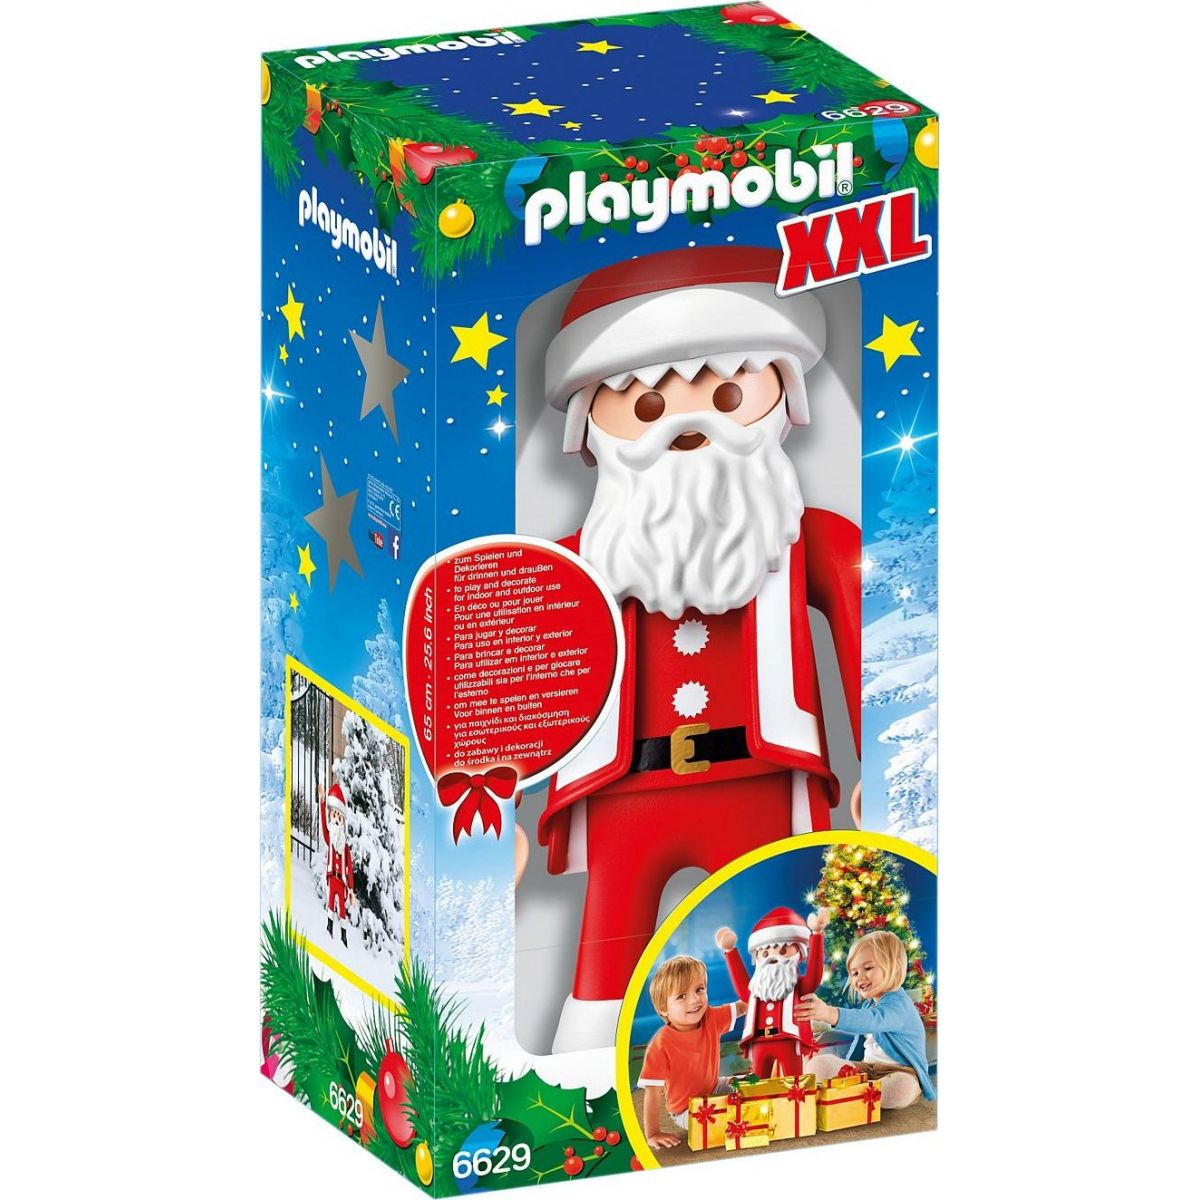 Playmobil 6629 XXL Santa Claus Playmobil